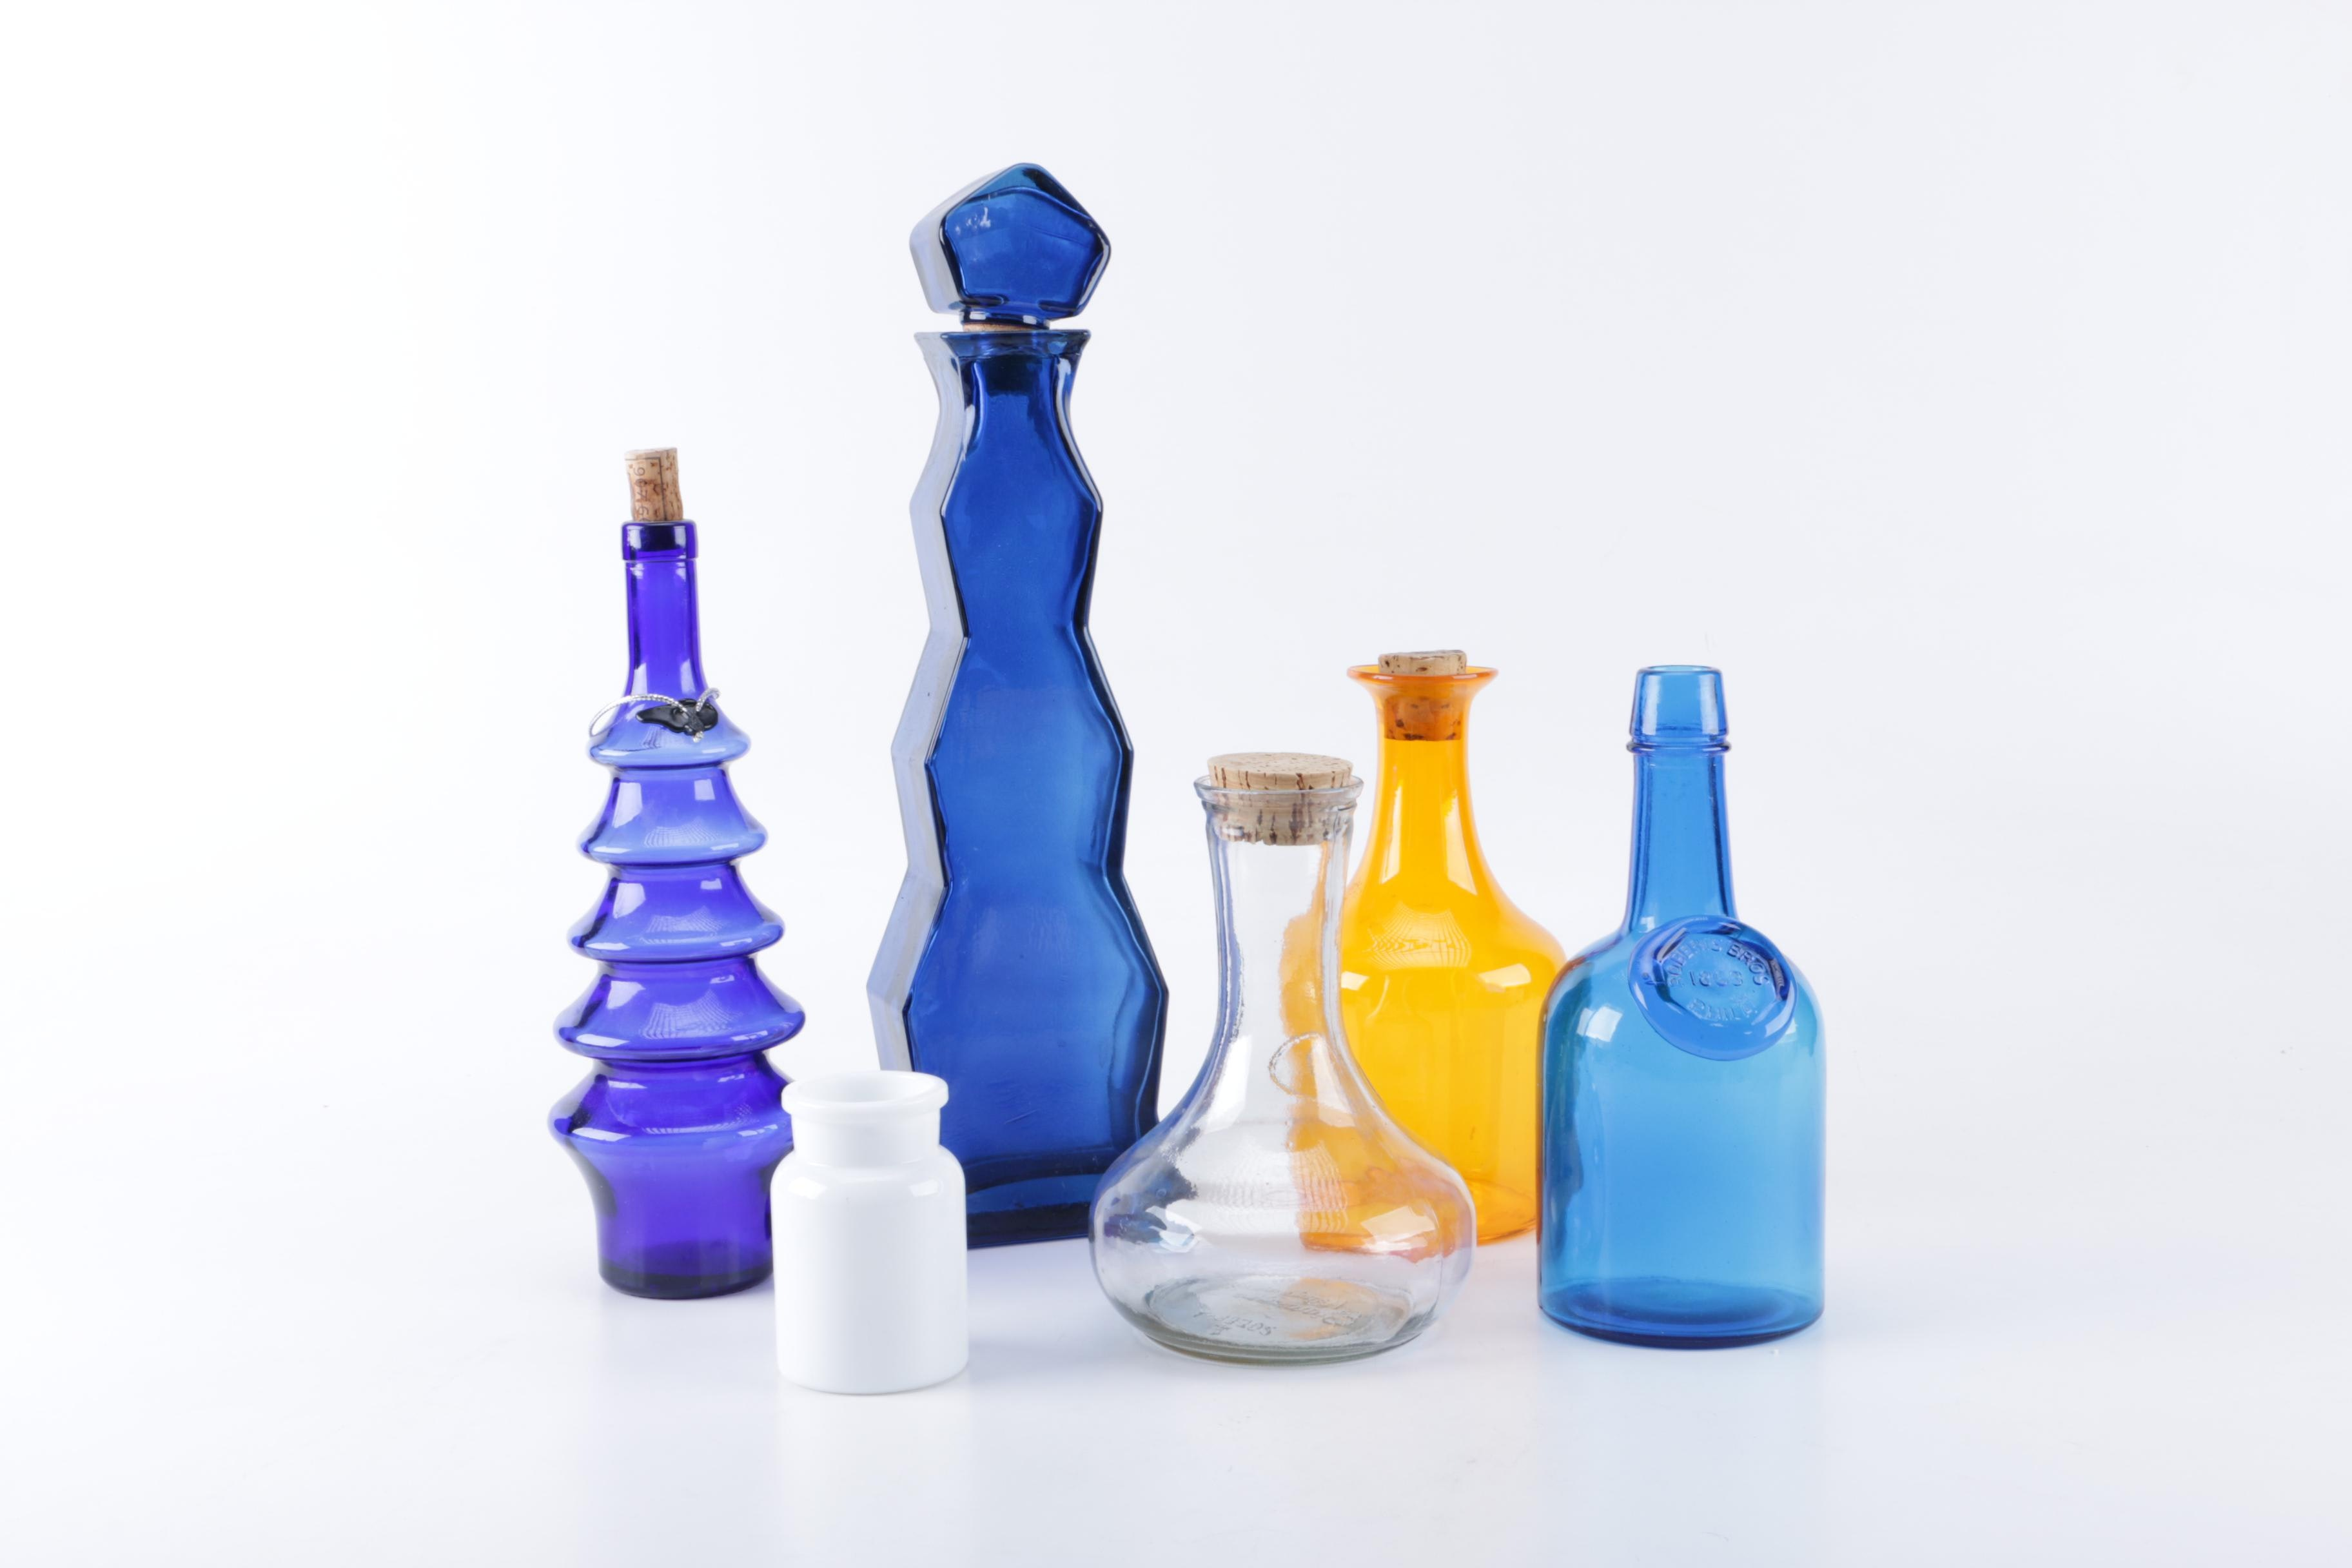 Assorted Glass Decanters and Bottles